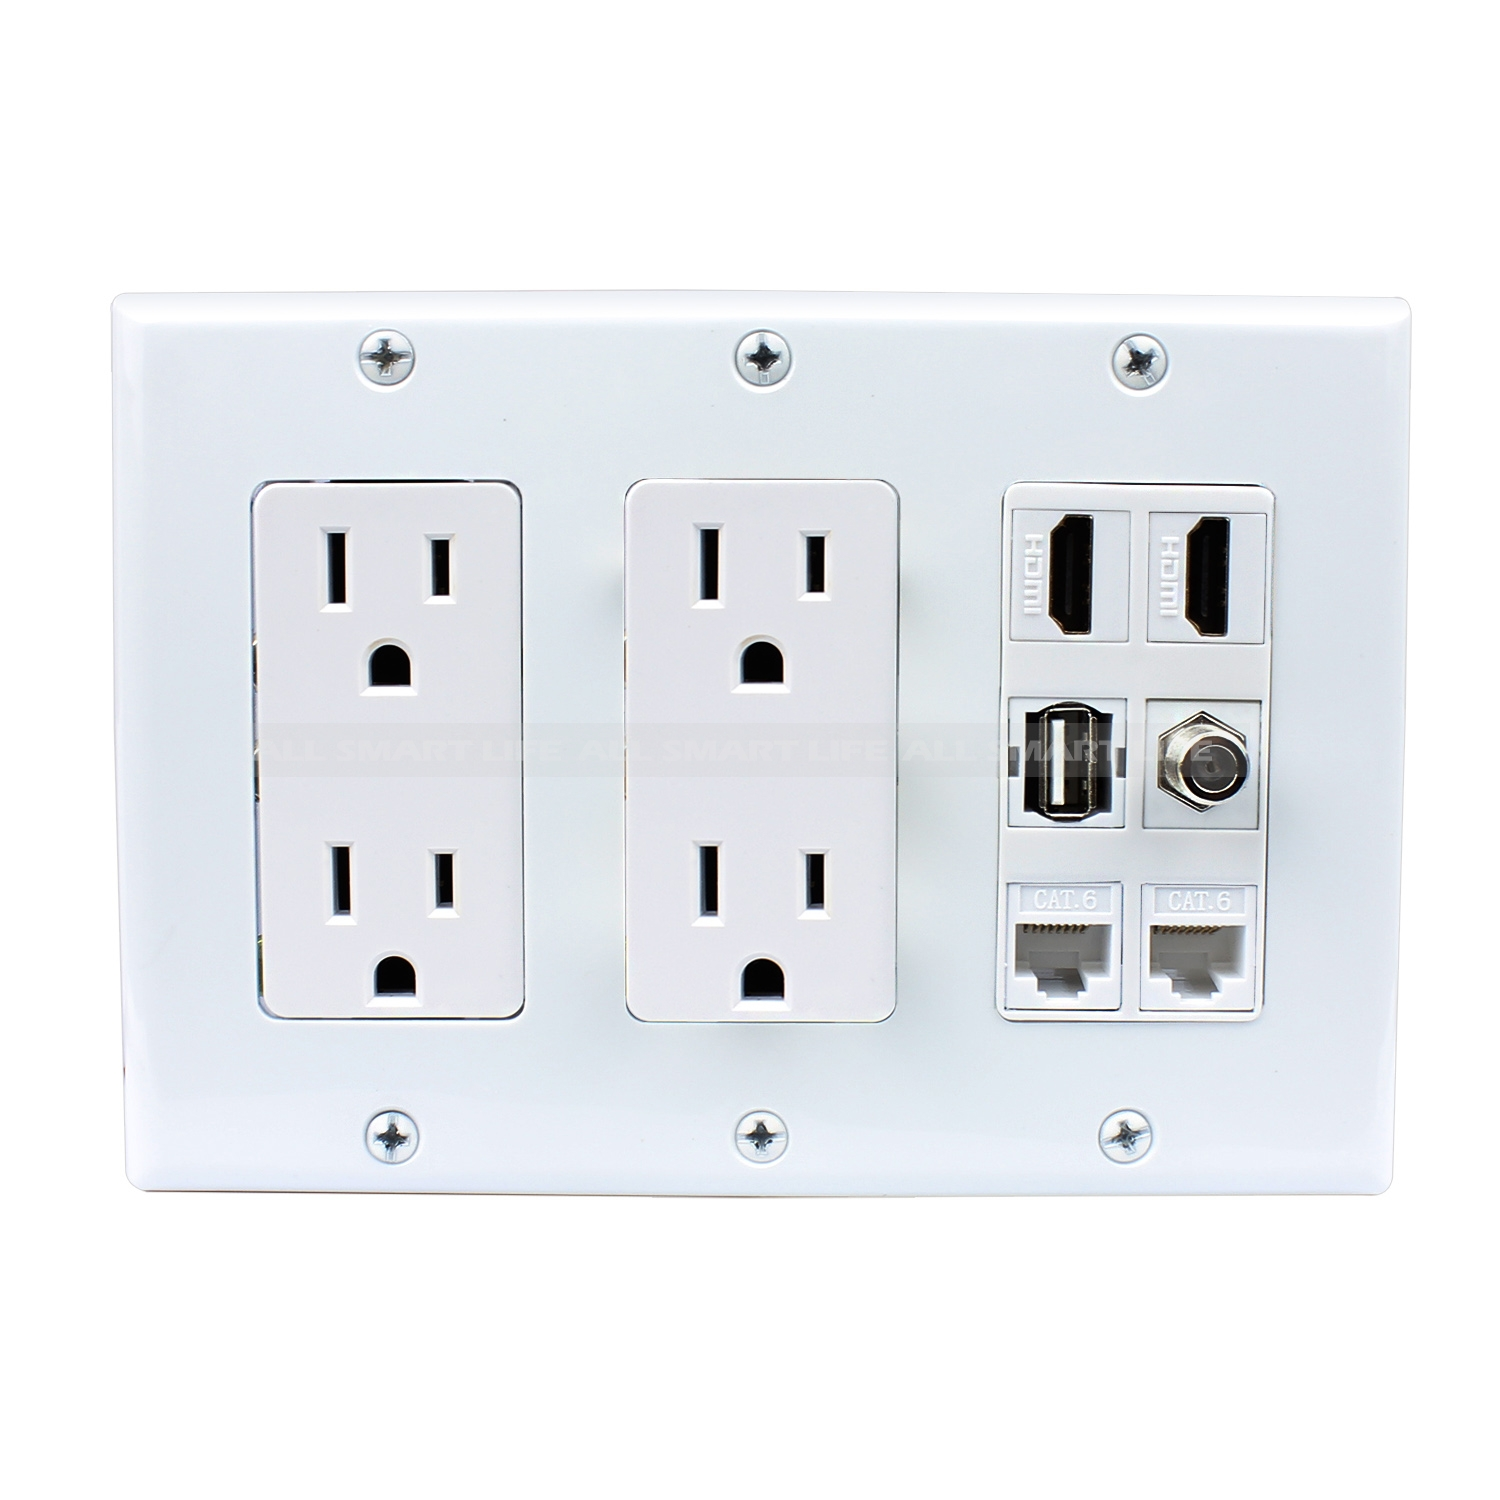 Hdmi Outlet Multipurpose Design 2 Gang 2x Power Outlet 2x Hdmi 1x Usb 2x Cat6